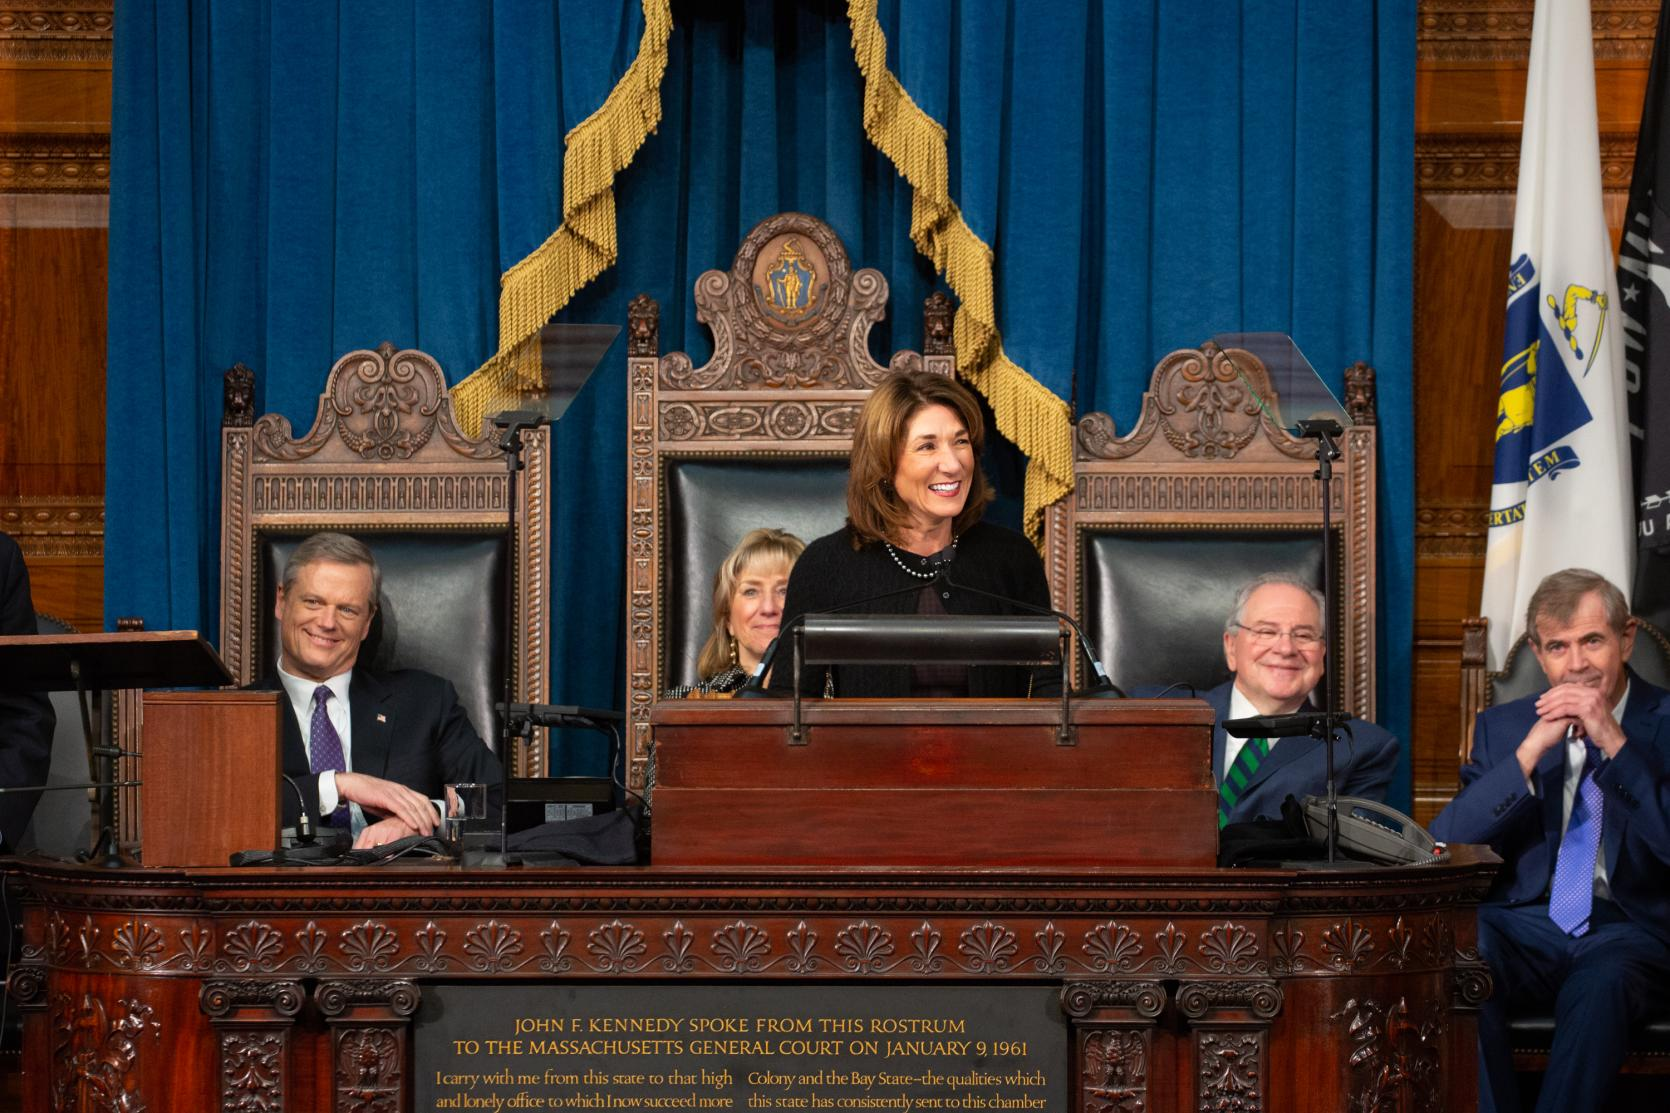 Lt. Governor Polito delivers her Inaugural address in the House Chamber.